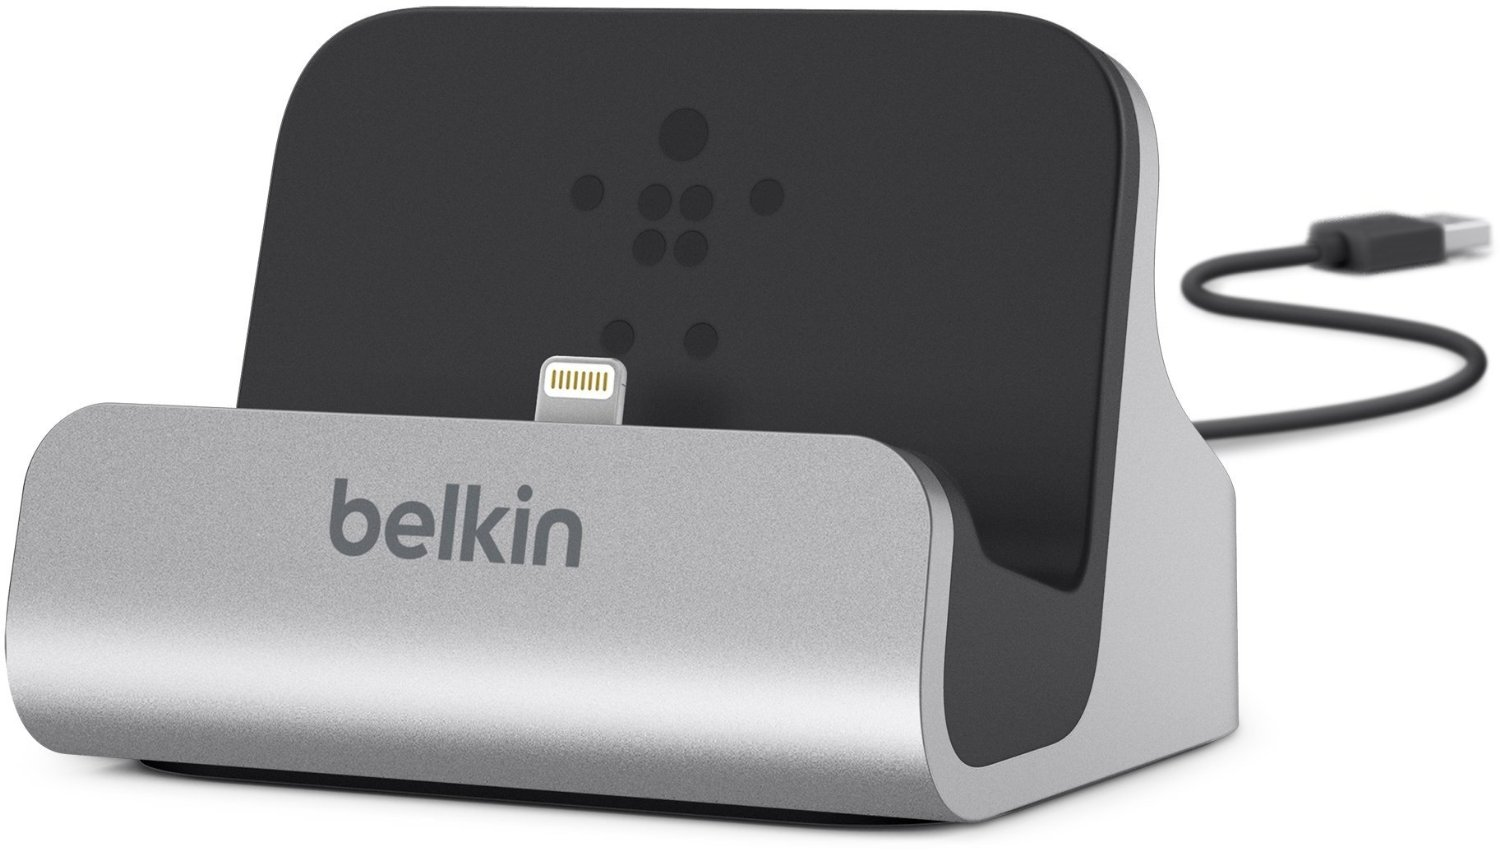 Belkin S Charge And Sync Dock Has A Small Footprint And A